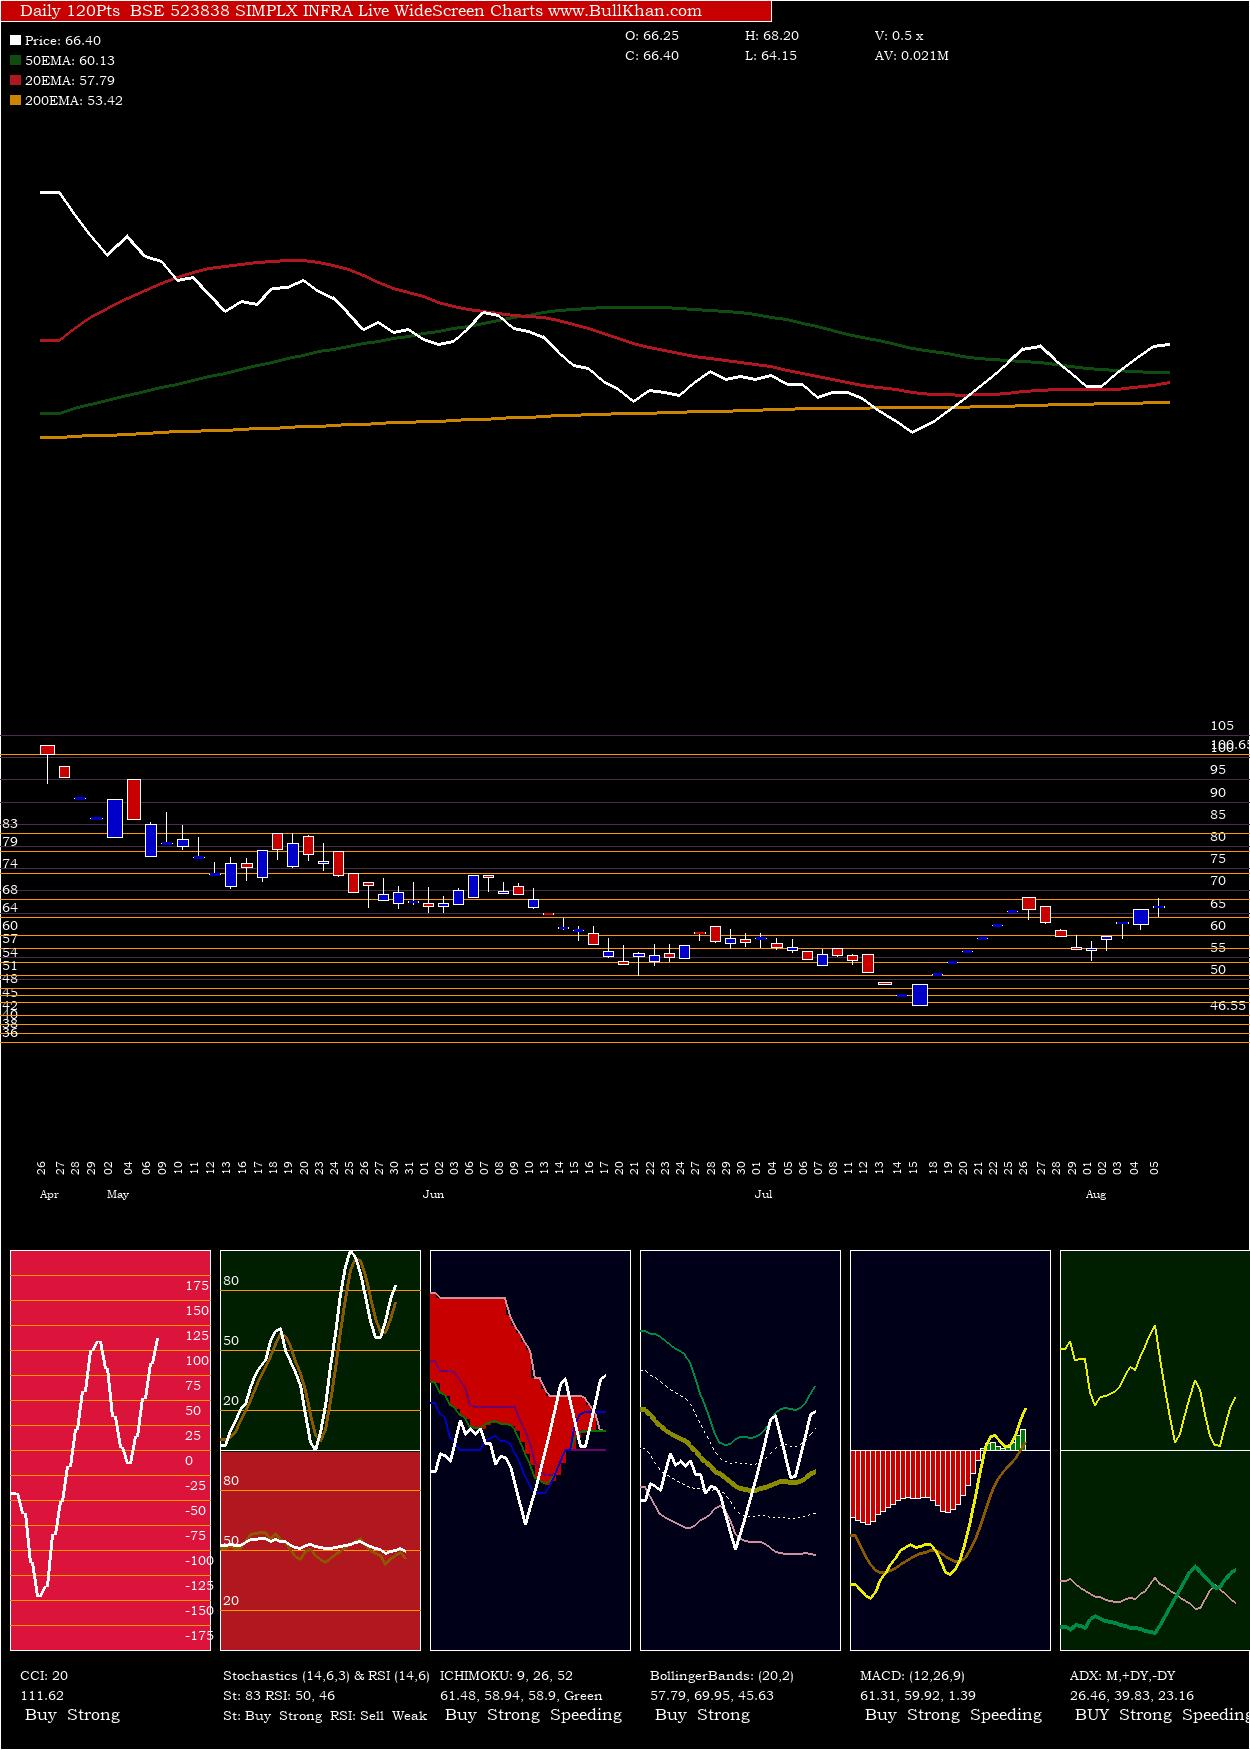 Simplx Infra charts and indicators